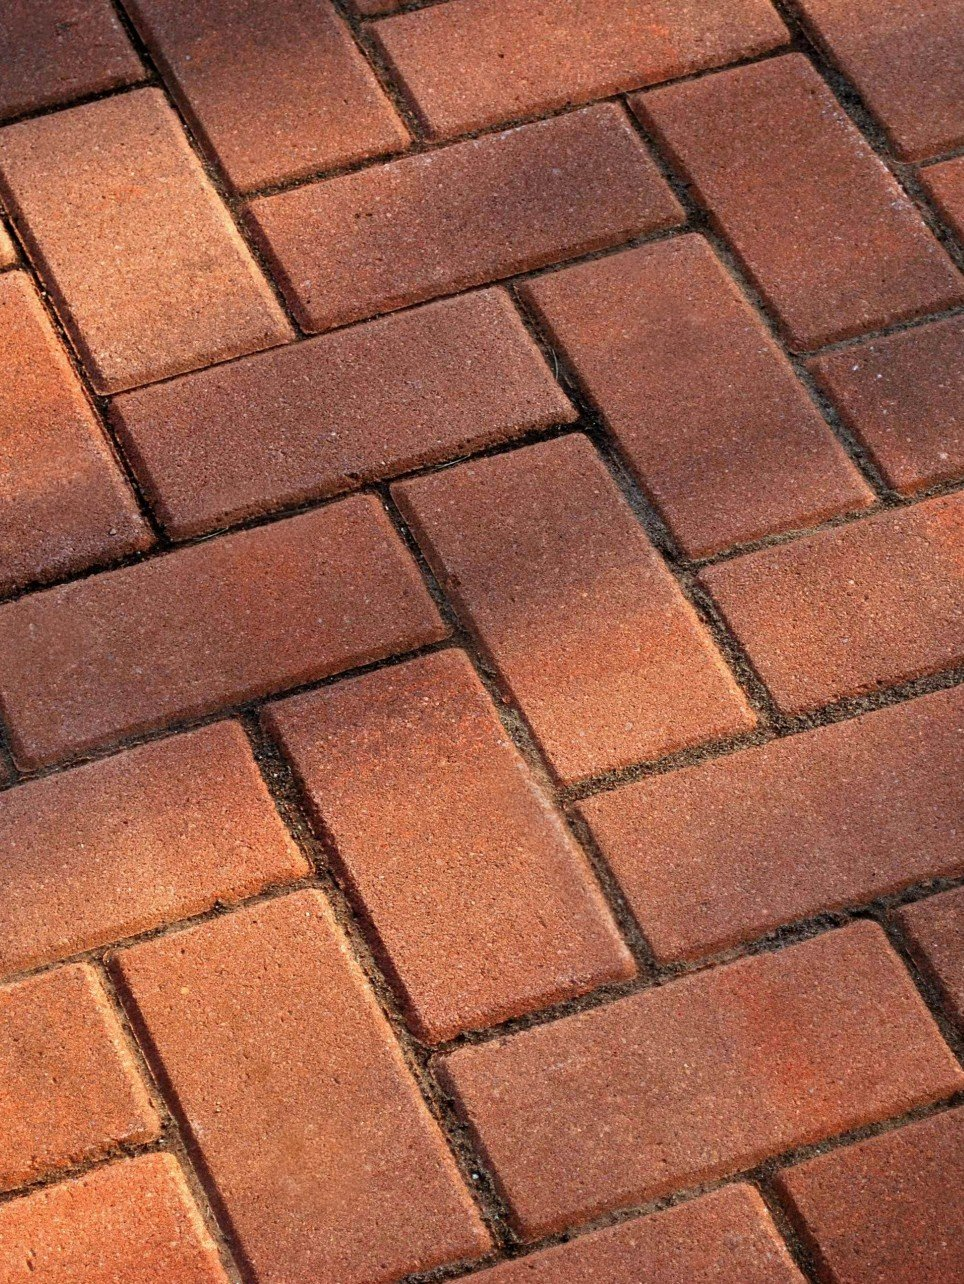 Block Paving Companies Balsall Heath